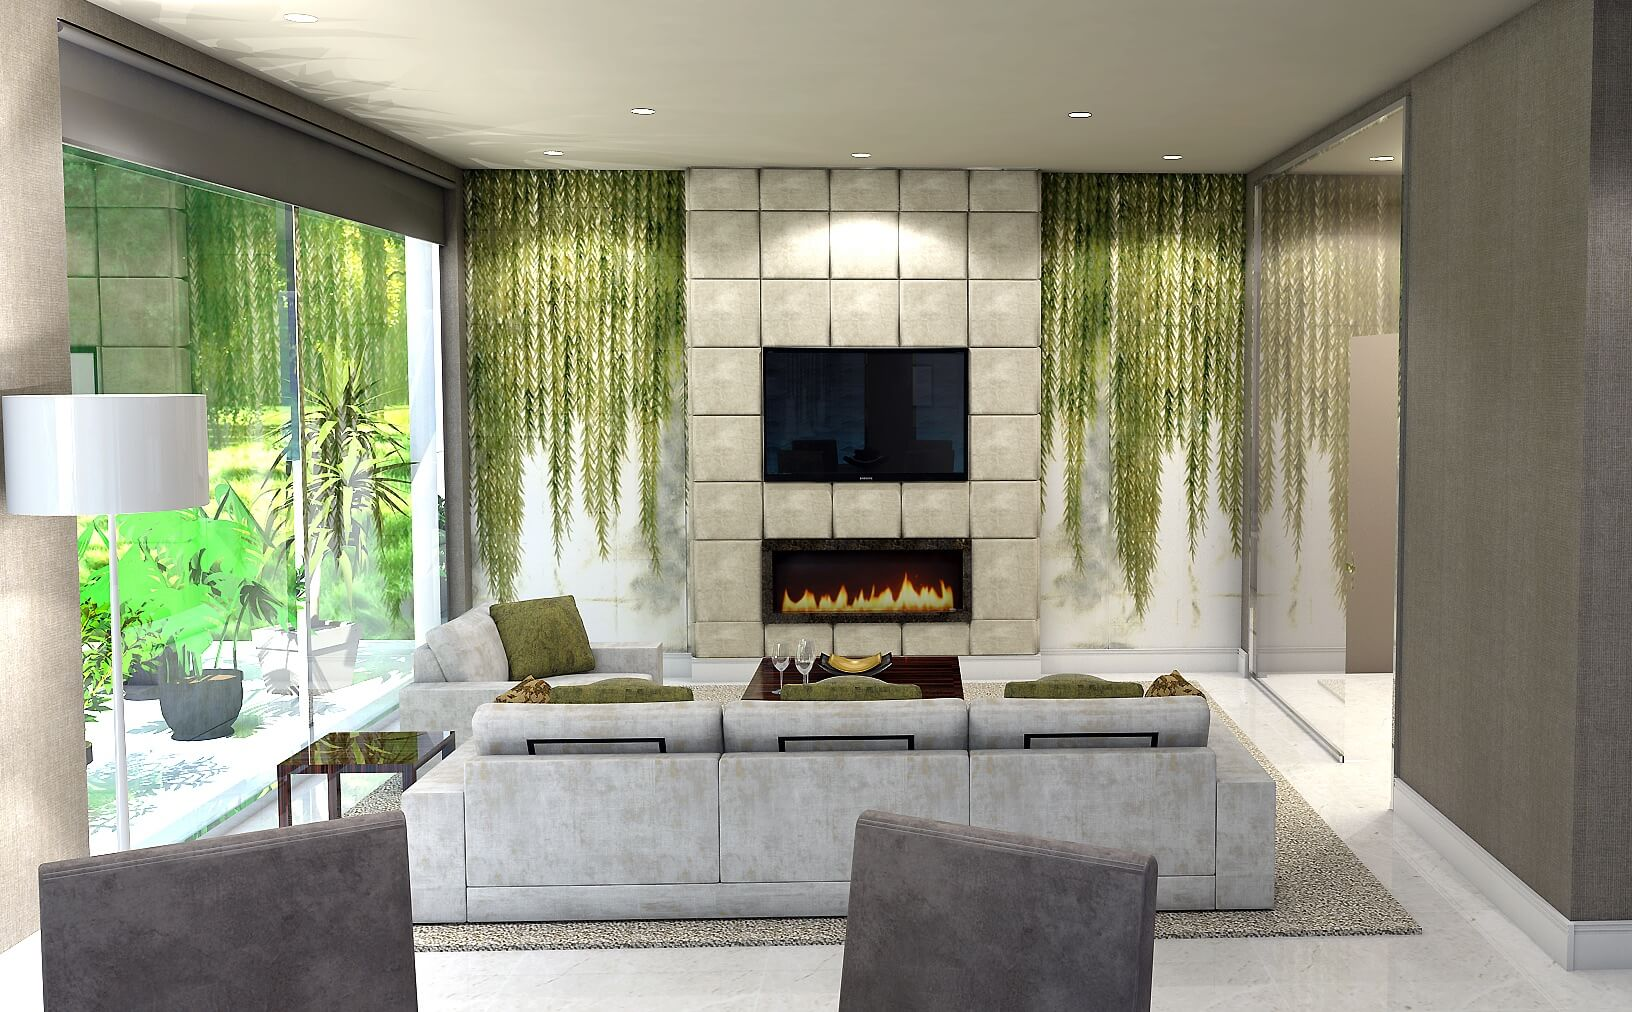 Interior design service london - Basement design services ...